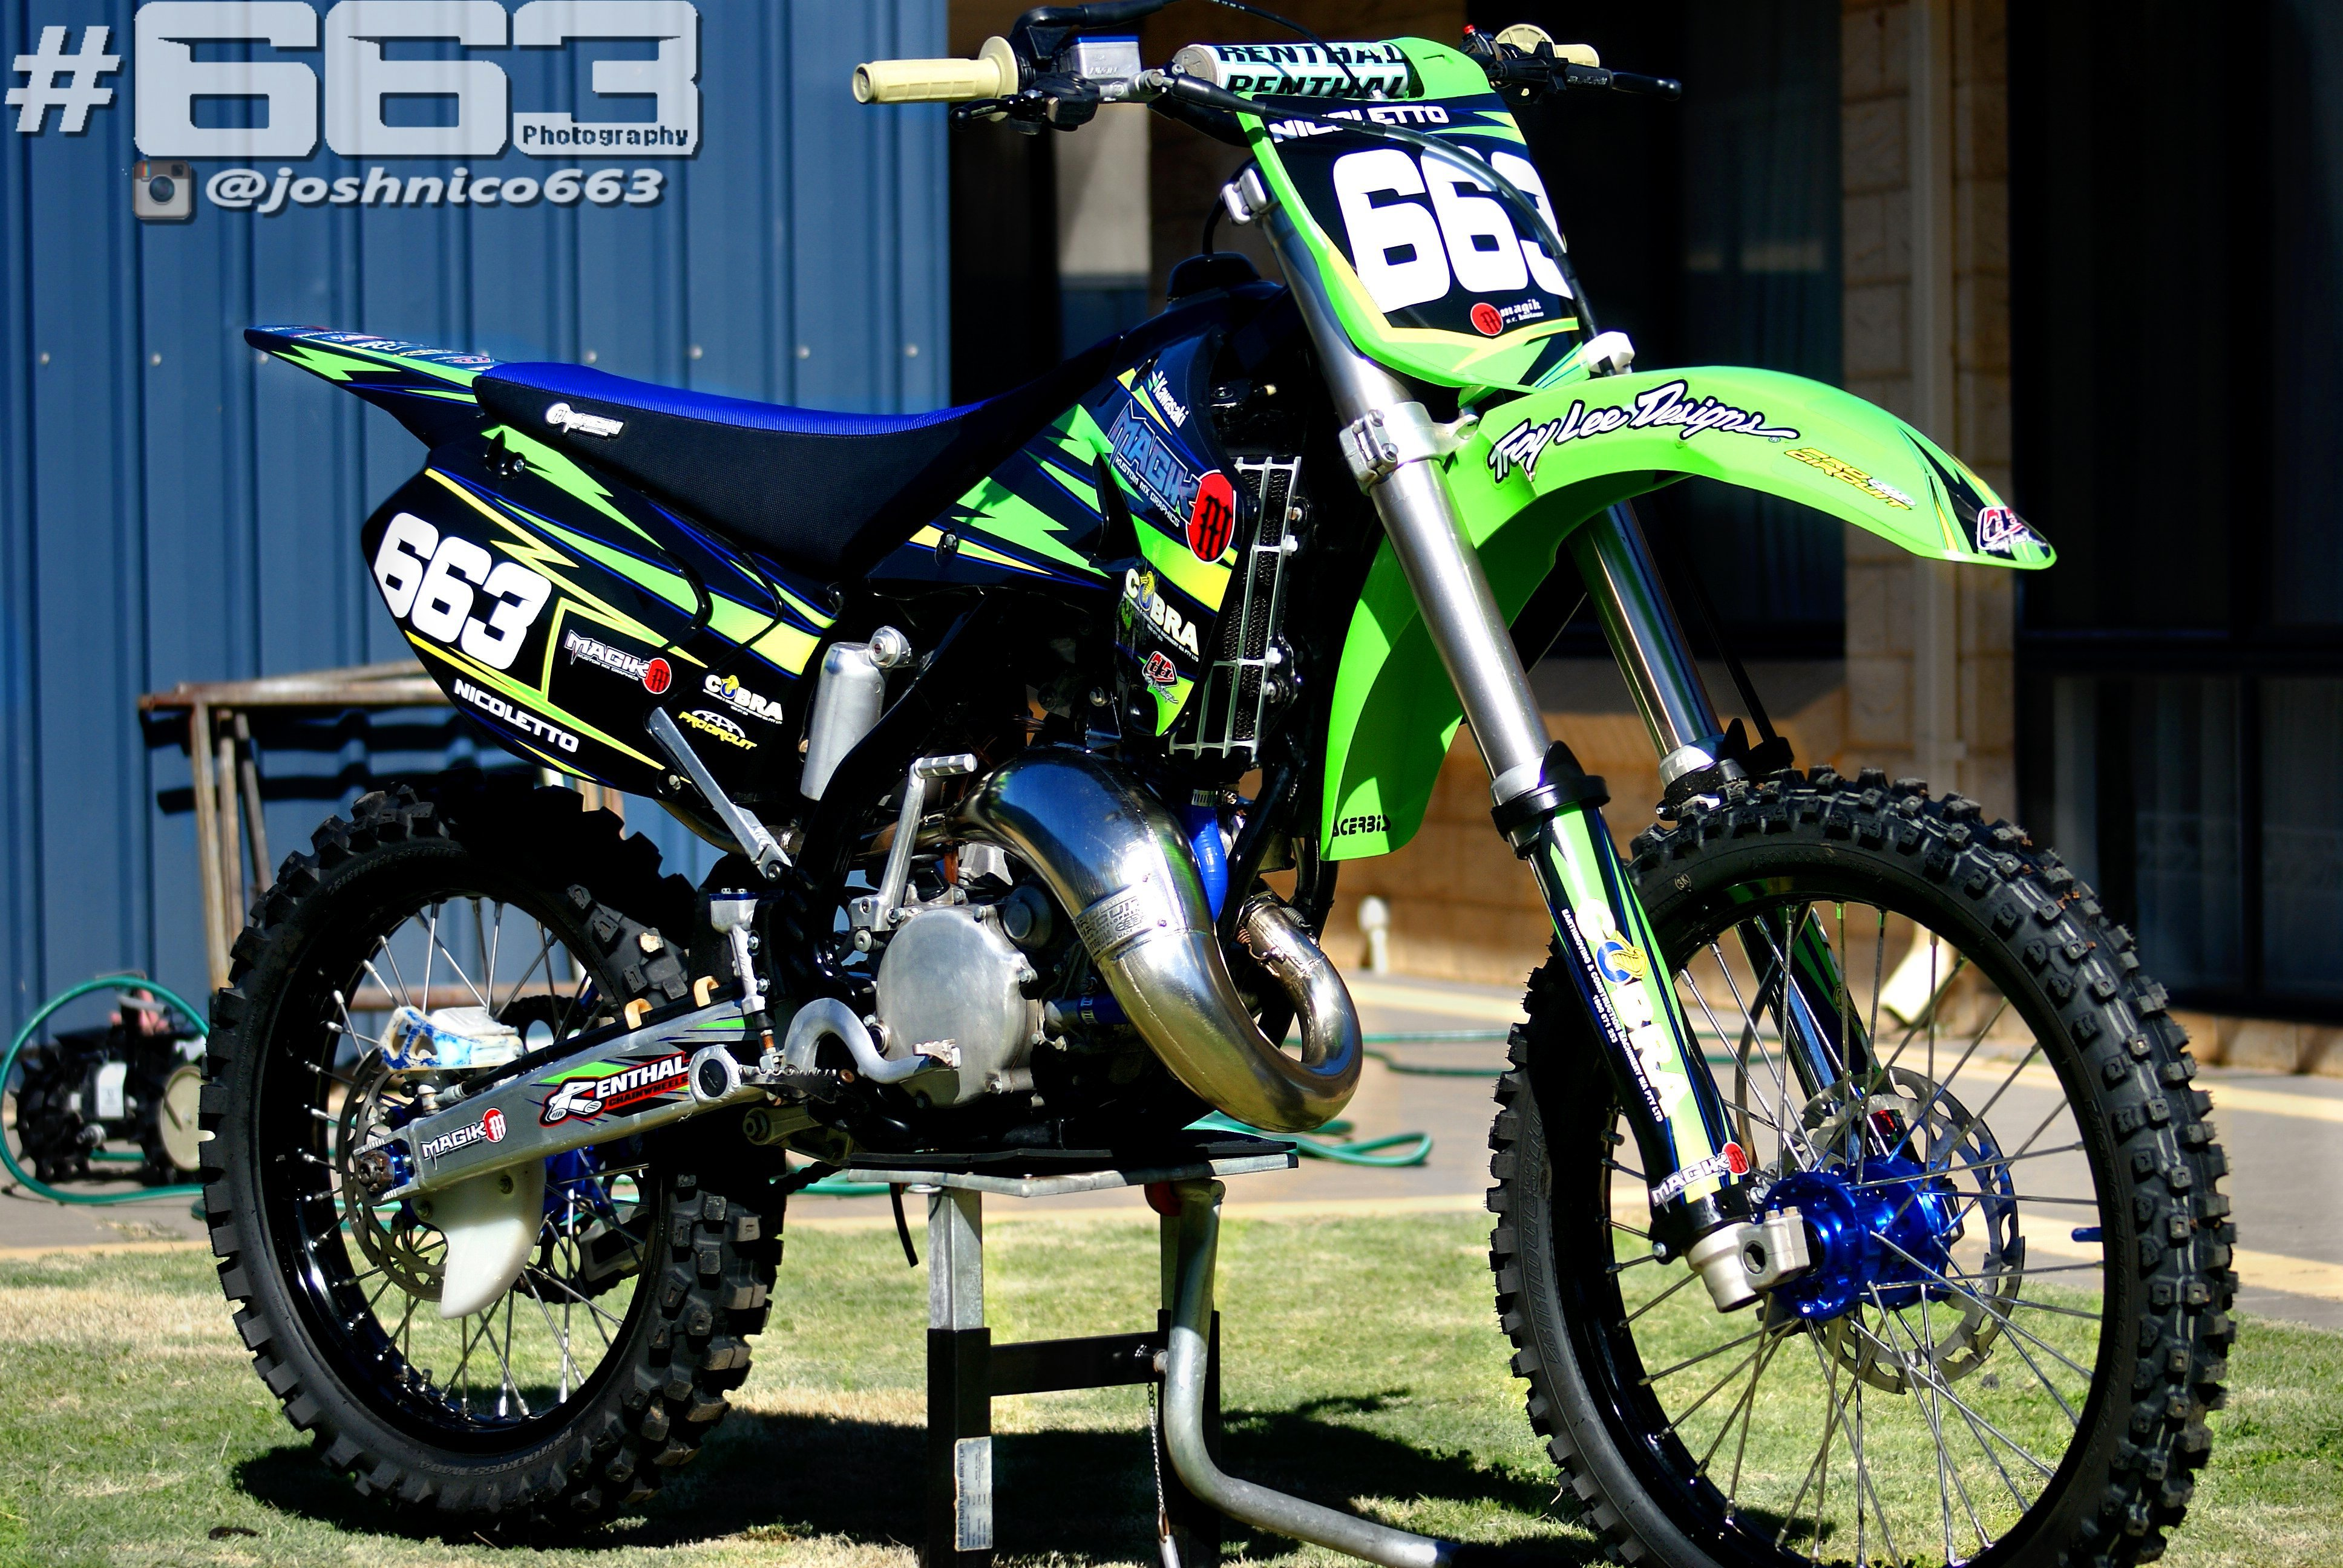 2004 Kx125 Rebuild Josh 663 S Bike Check Vital Mx